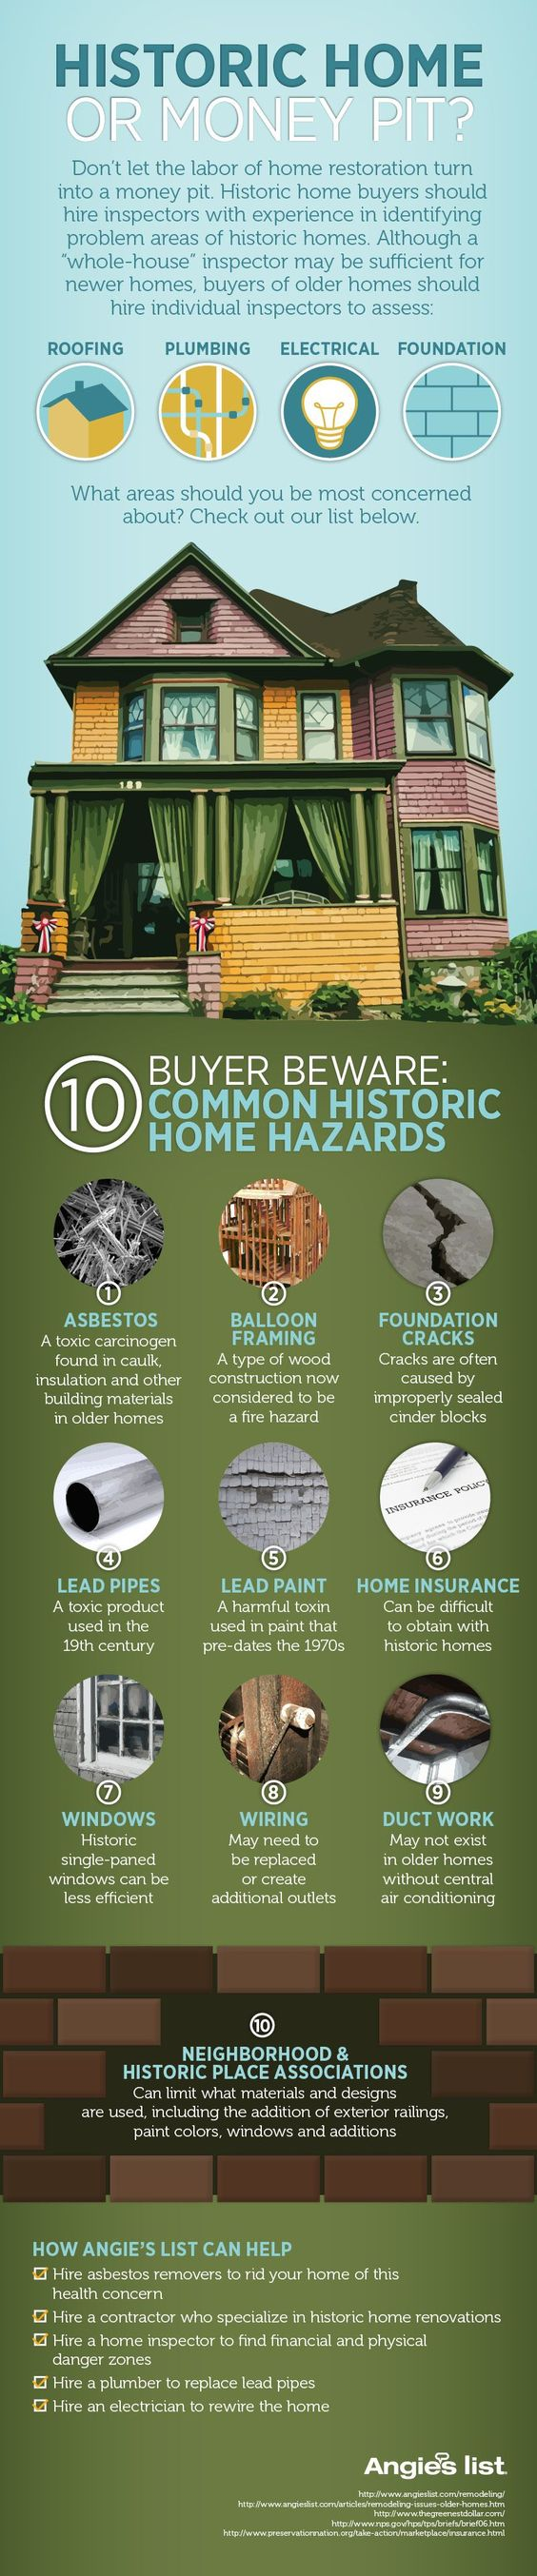 common-buyer-concerns-about-historic-homes